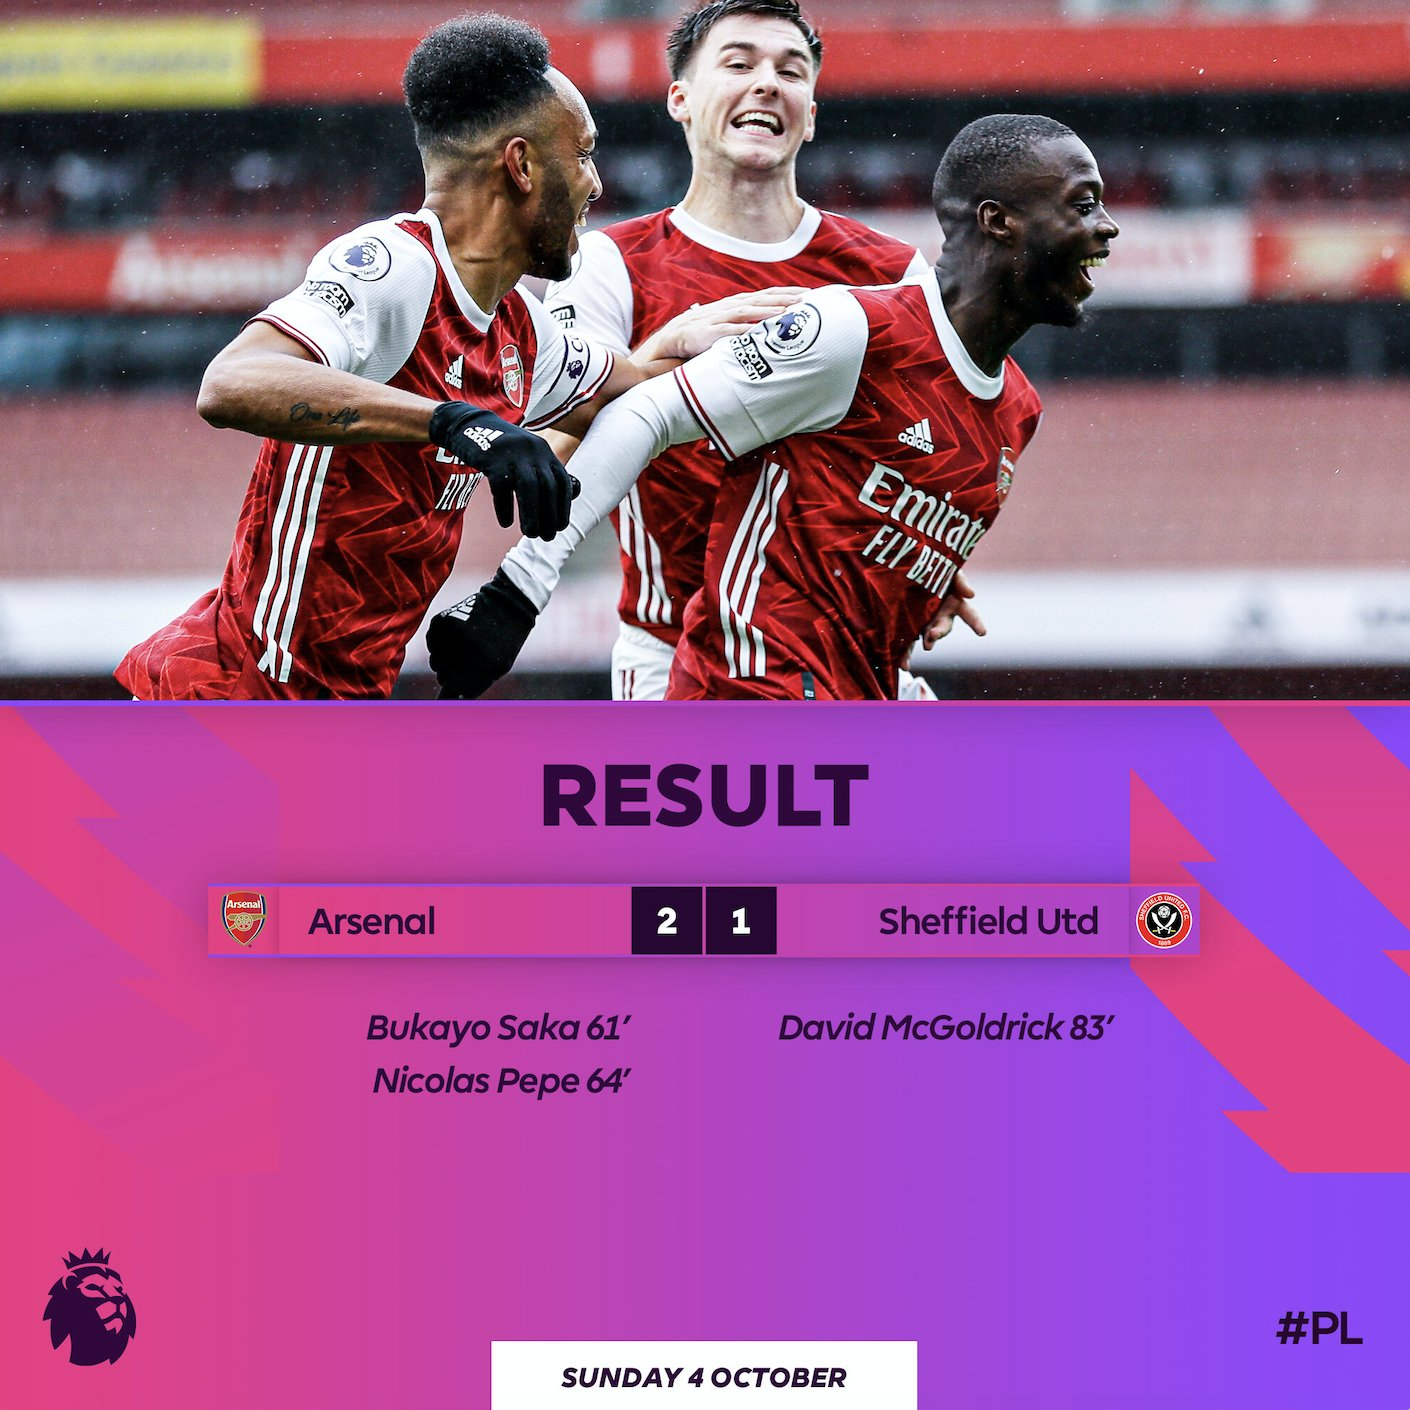 Arsenal 2 - 1 Sheffield United Highlight Mp4 Download